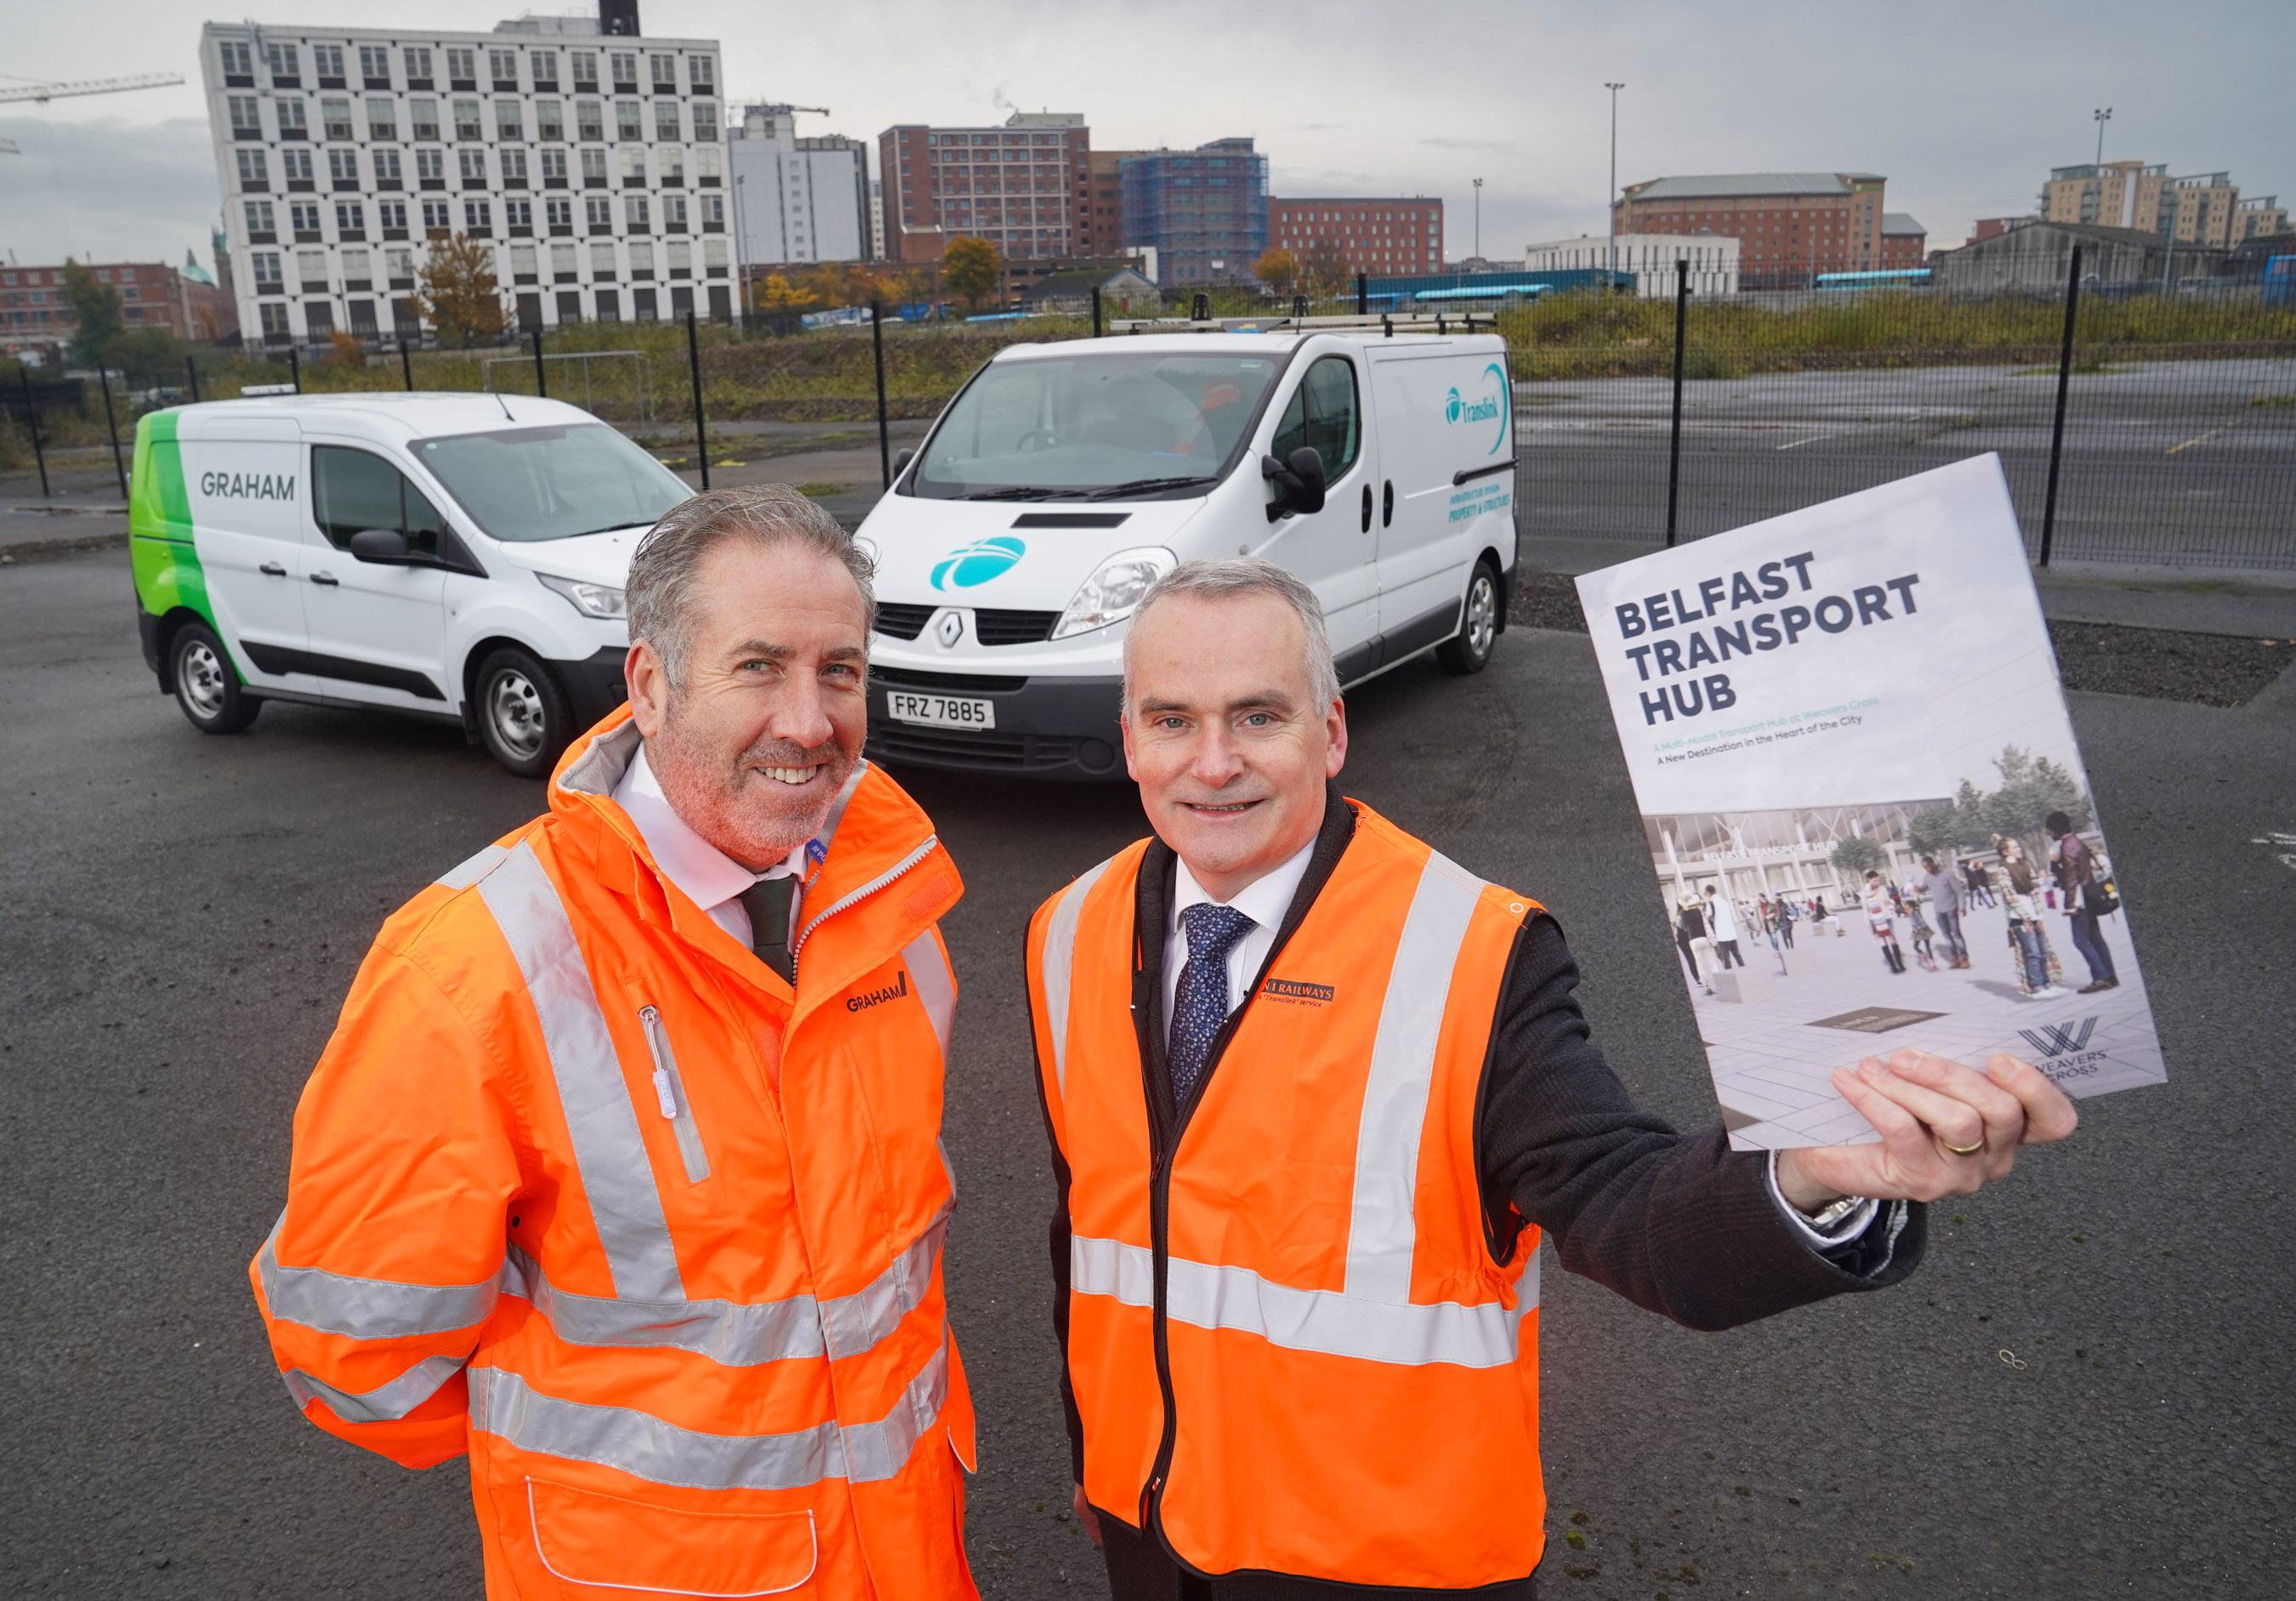 Work has started on the new Belfast Transport Hub for Translink image